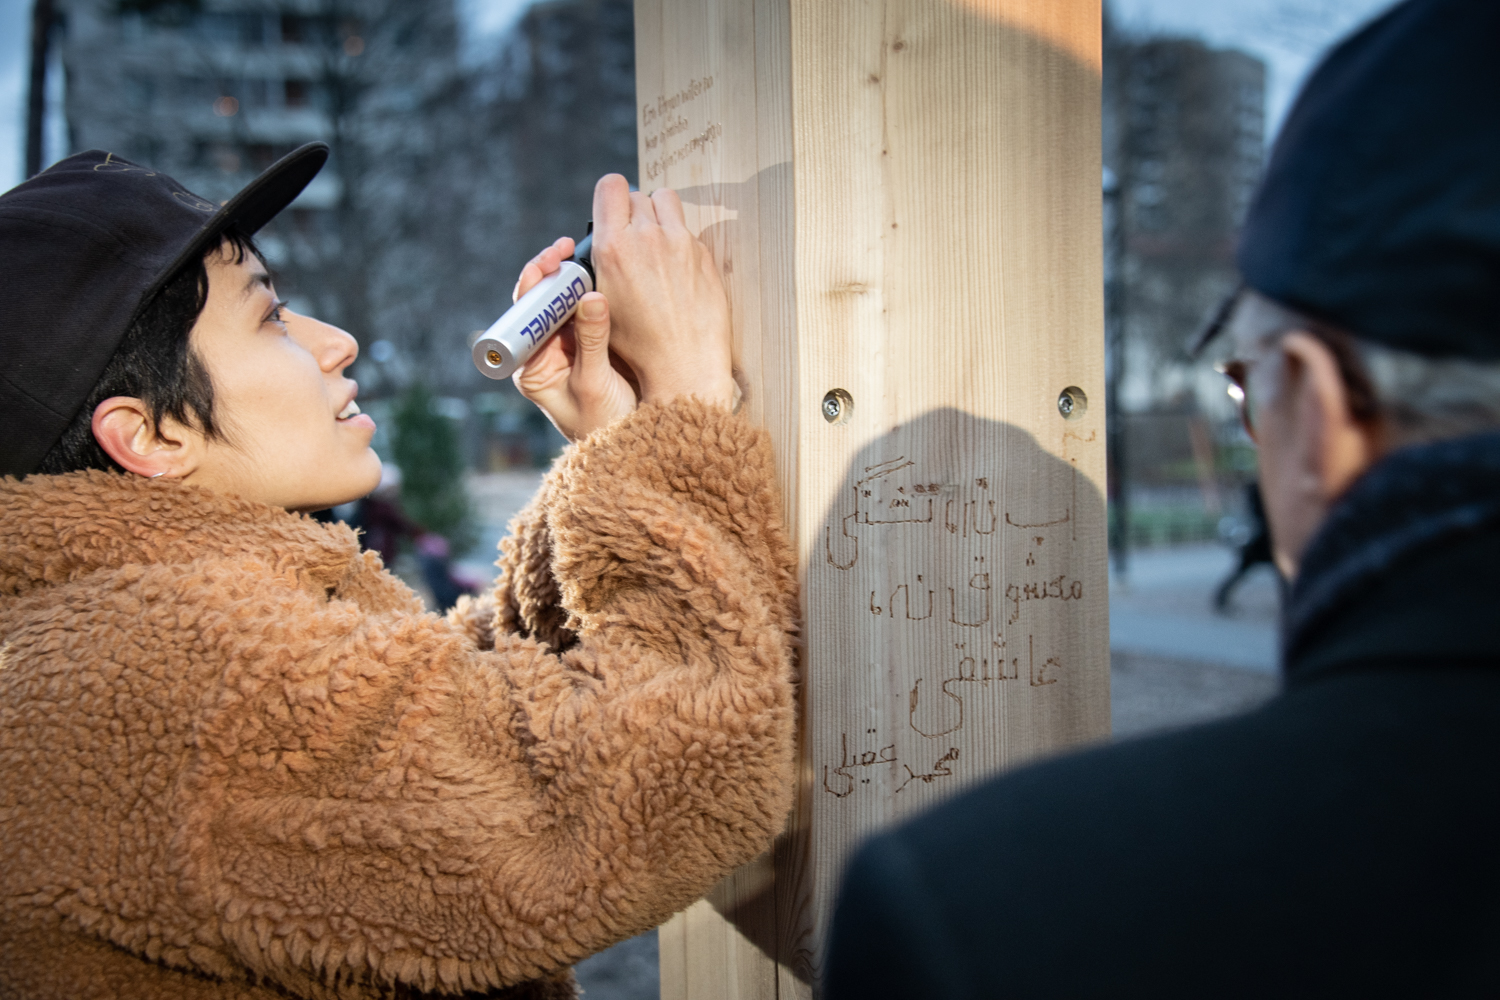 A woman engraving the post.